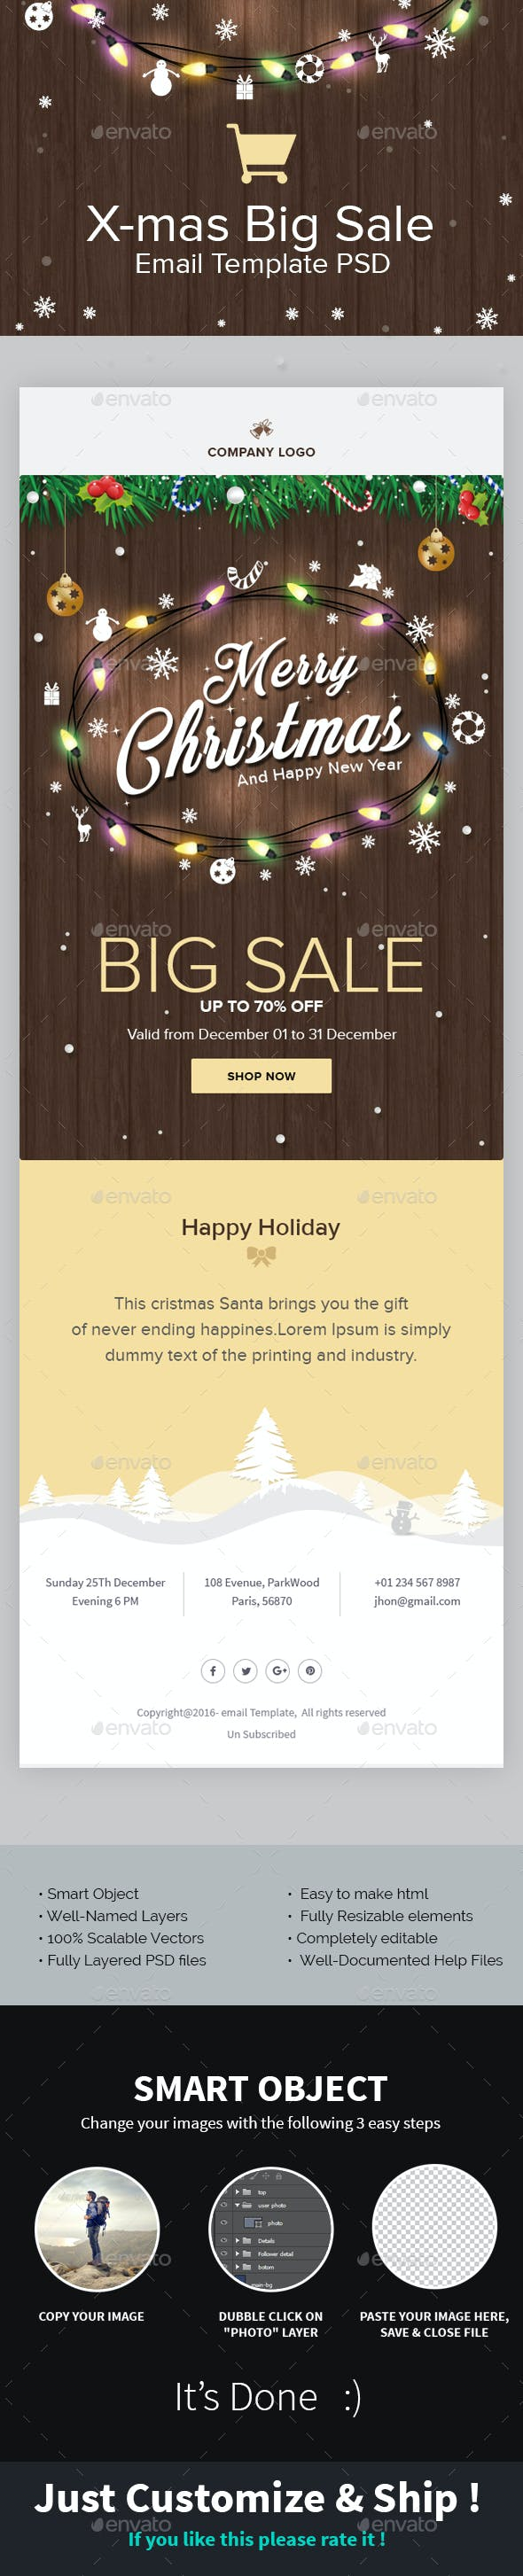 X-mas Offer - Christmas Shopping Offer Email Template PSD